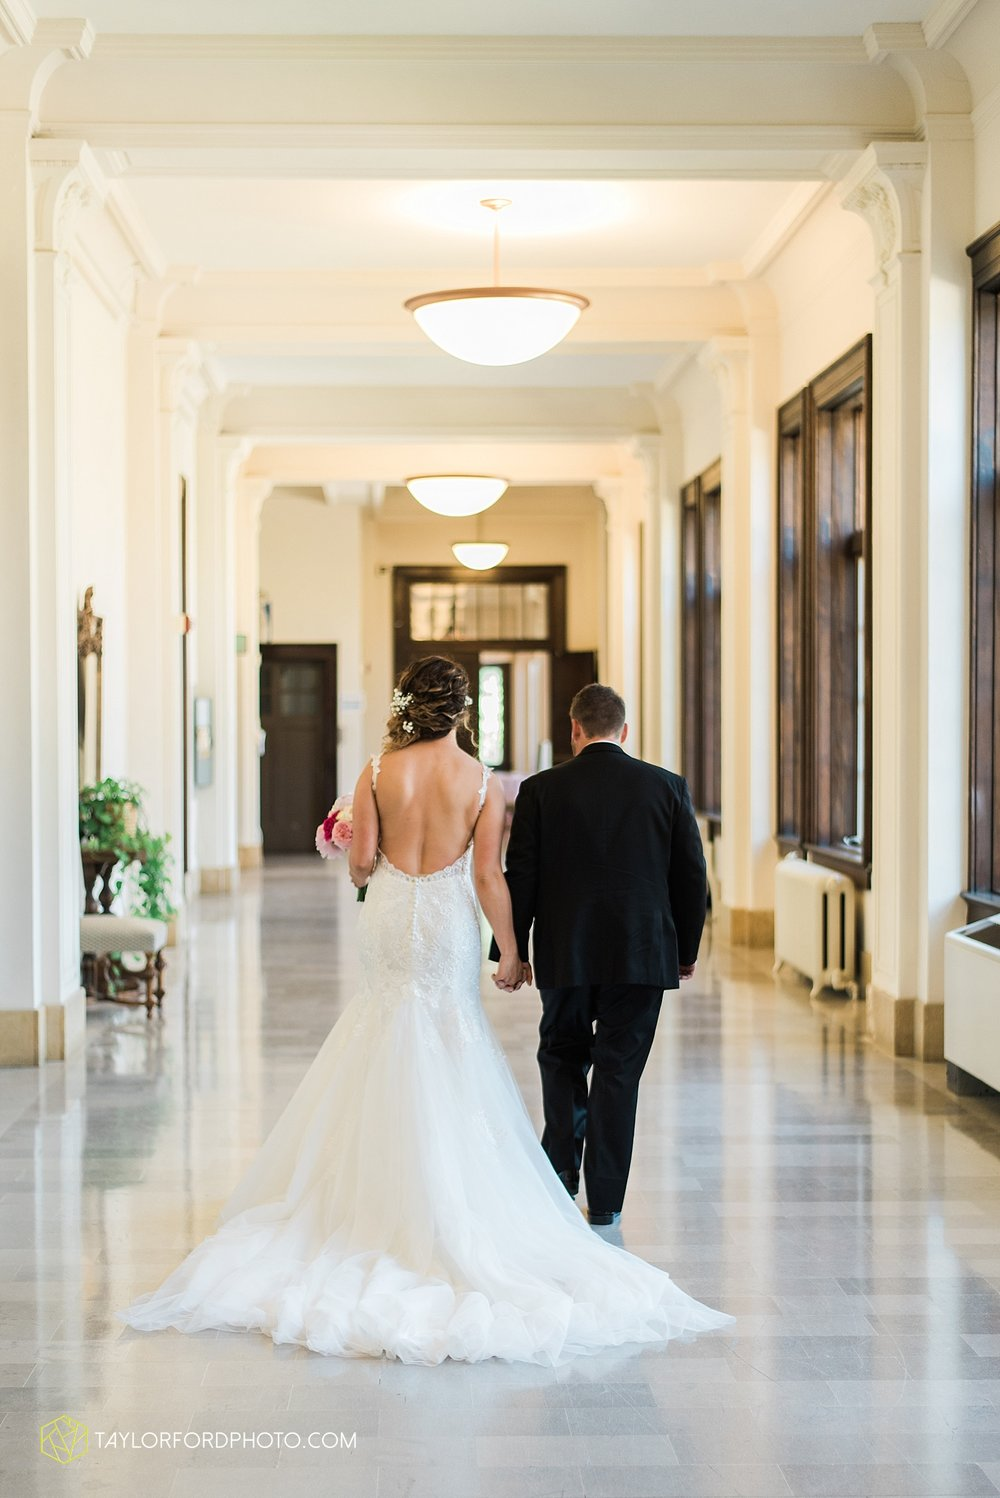 terre-haute-indiana-wedding-photographer-taylor-ford-photography-saint-marys-of-the-woods-college-weddings_2889.jpg